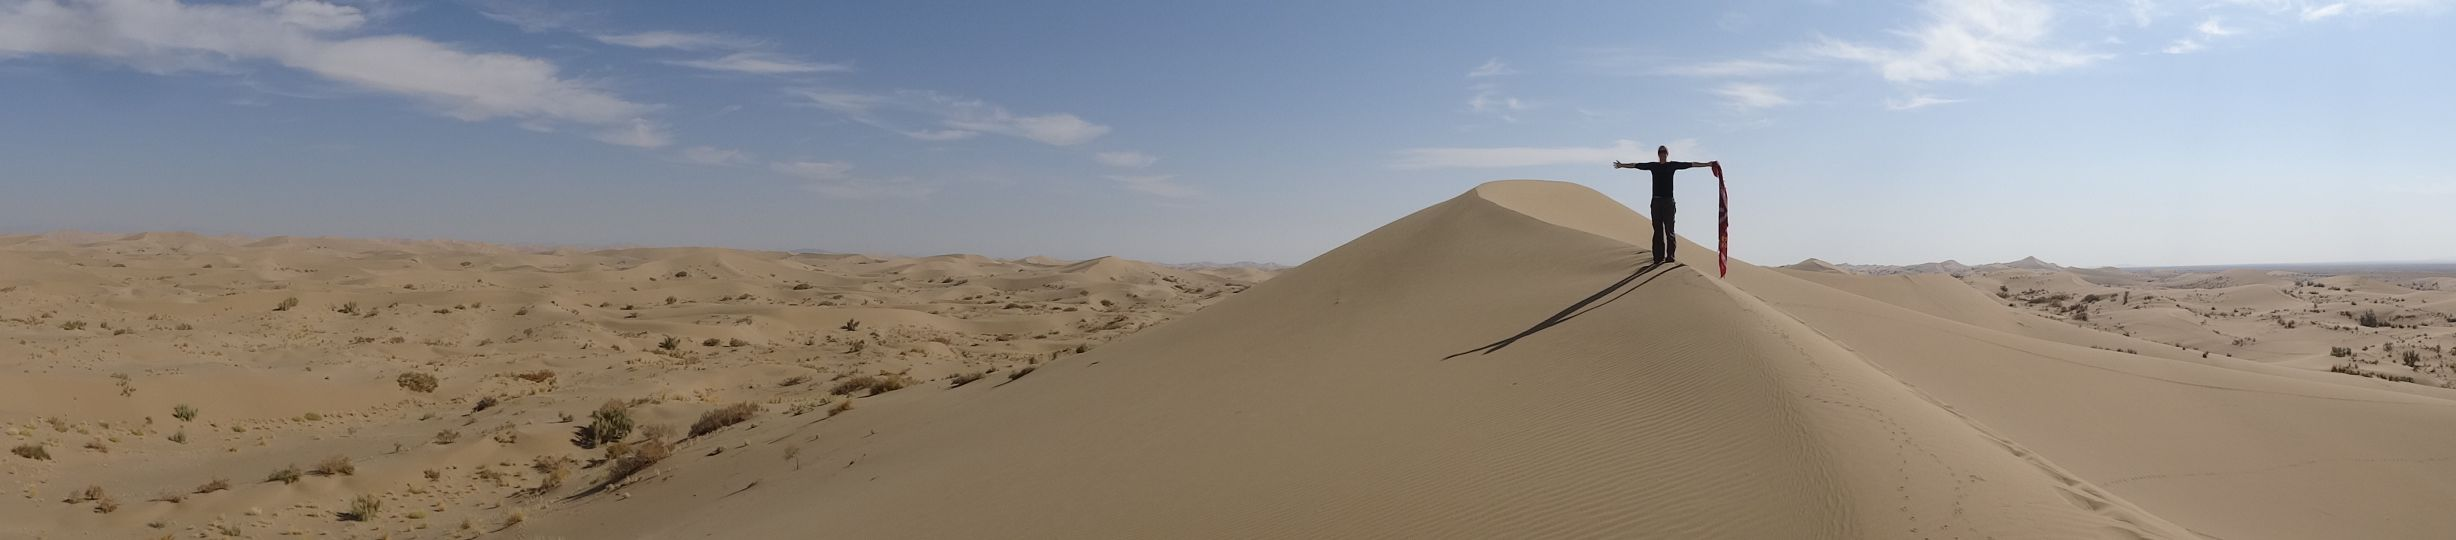 Ballasting sand dunes - without a breath of wind